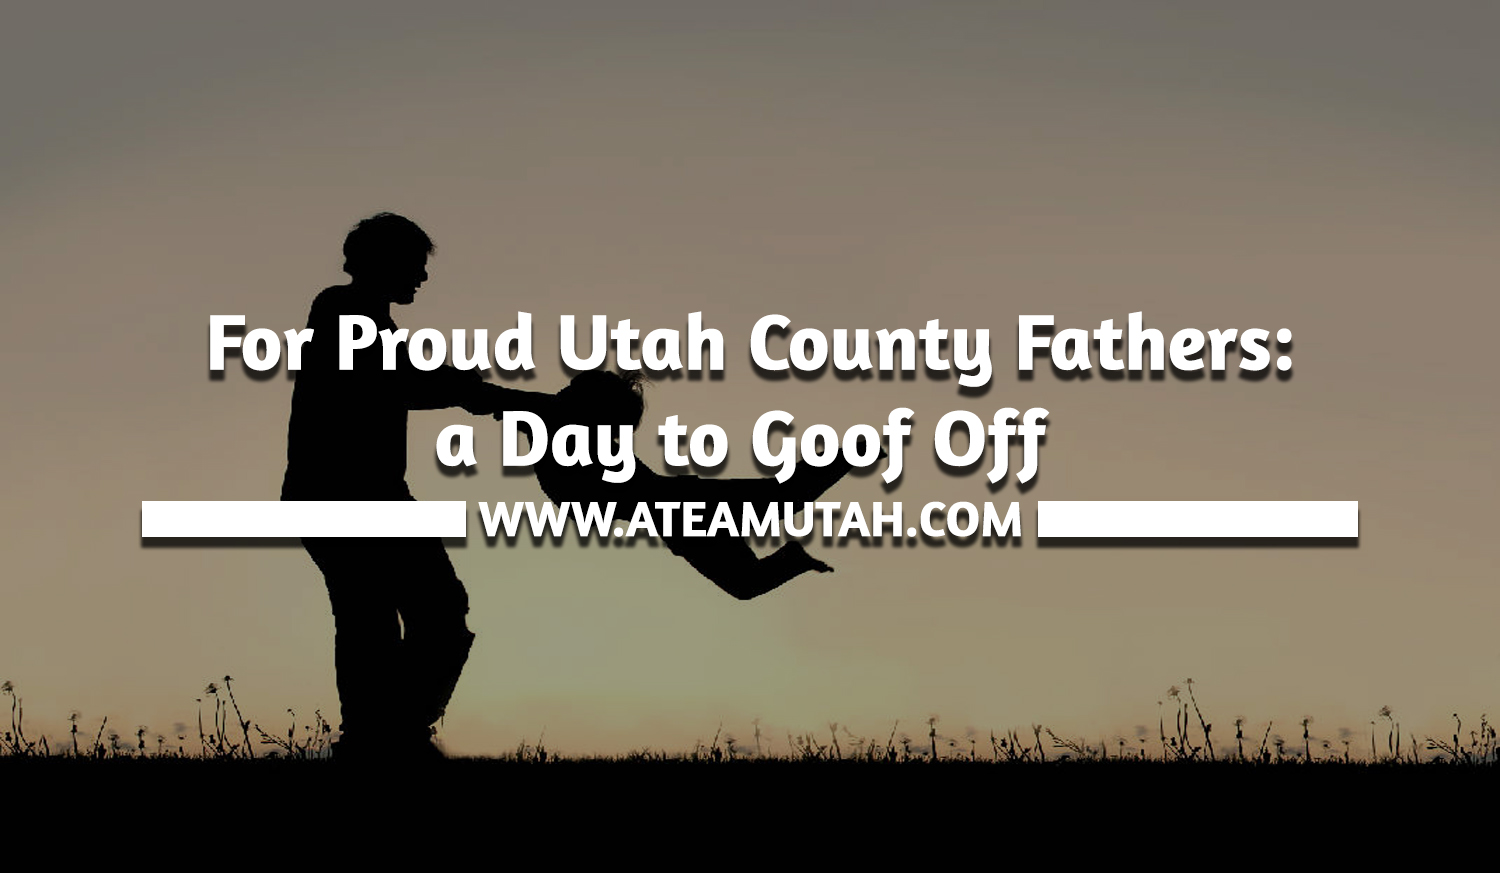 real estate, utah real estate, utah homes, utah homes for sale, utah home buyers, father's day in utah county